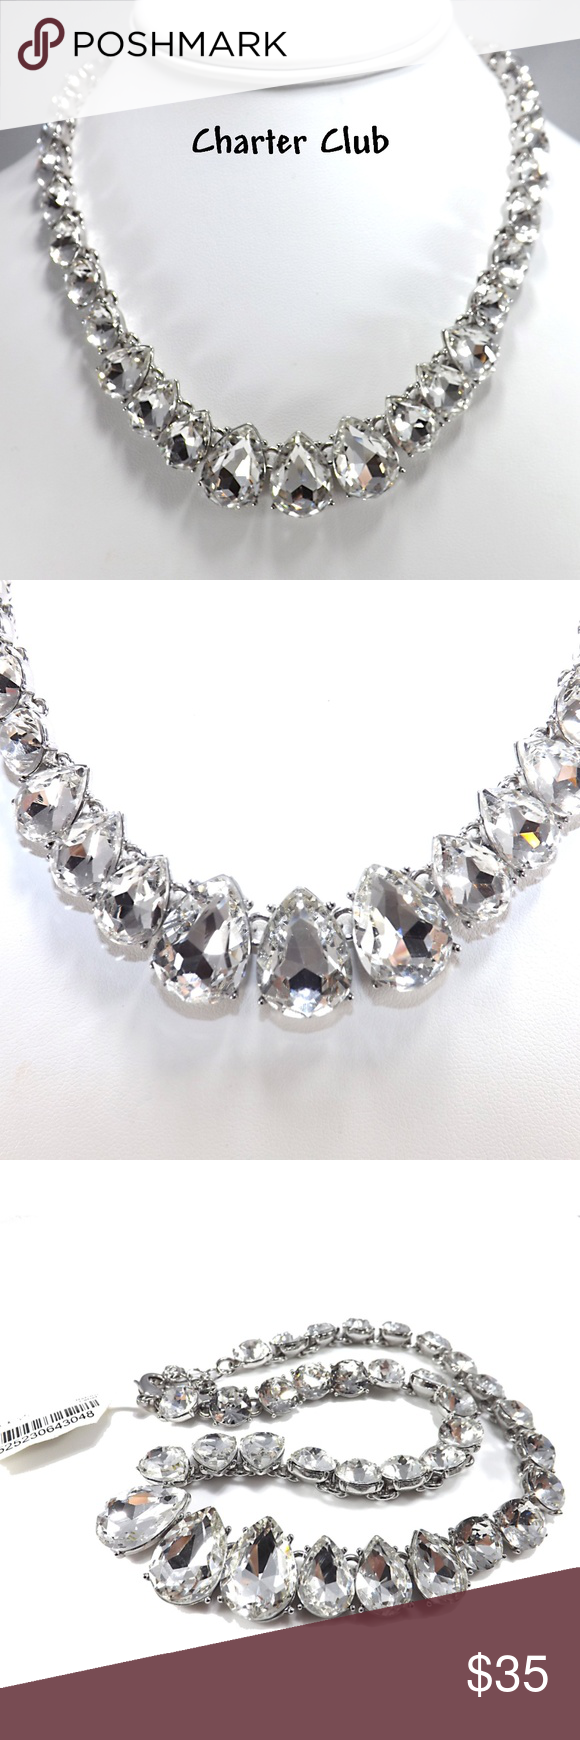 bbe3689bc7a07 Charter Club Clear Rhinestone Silver Tone Necklace *New With Tags ...